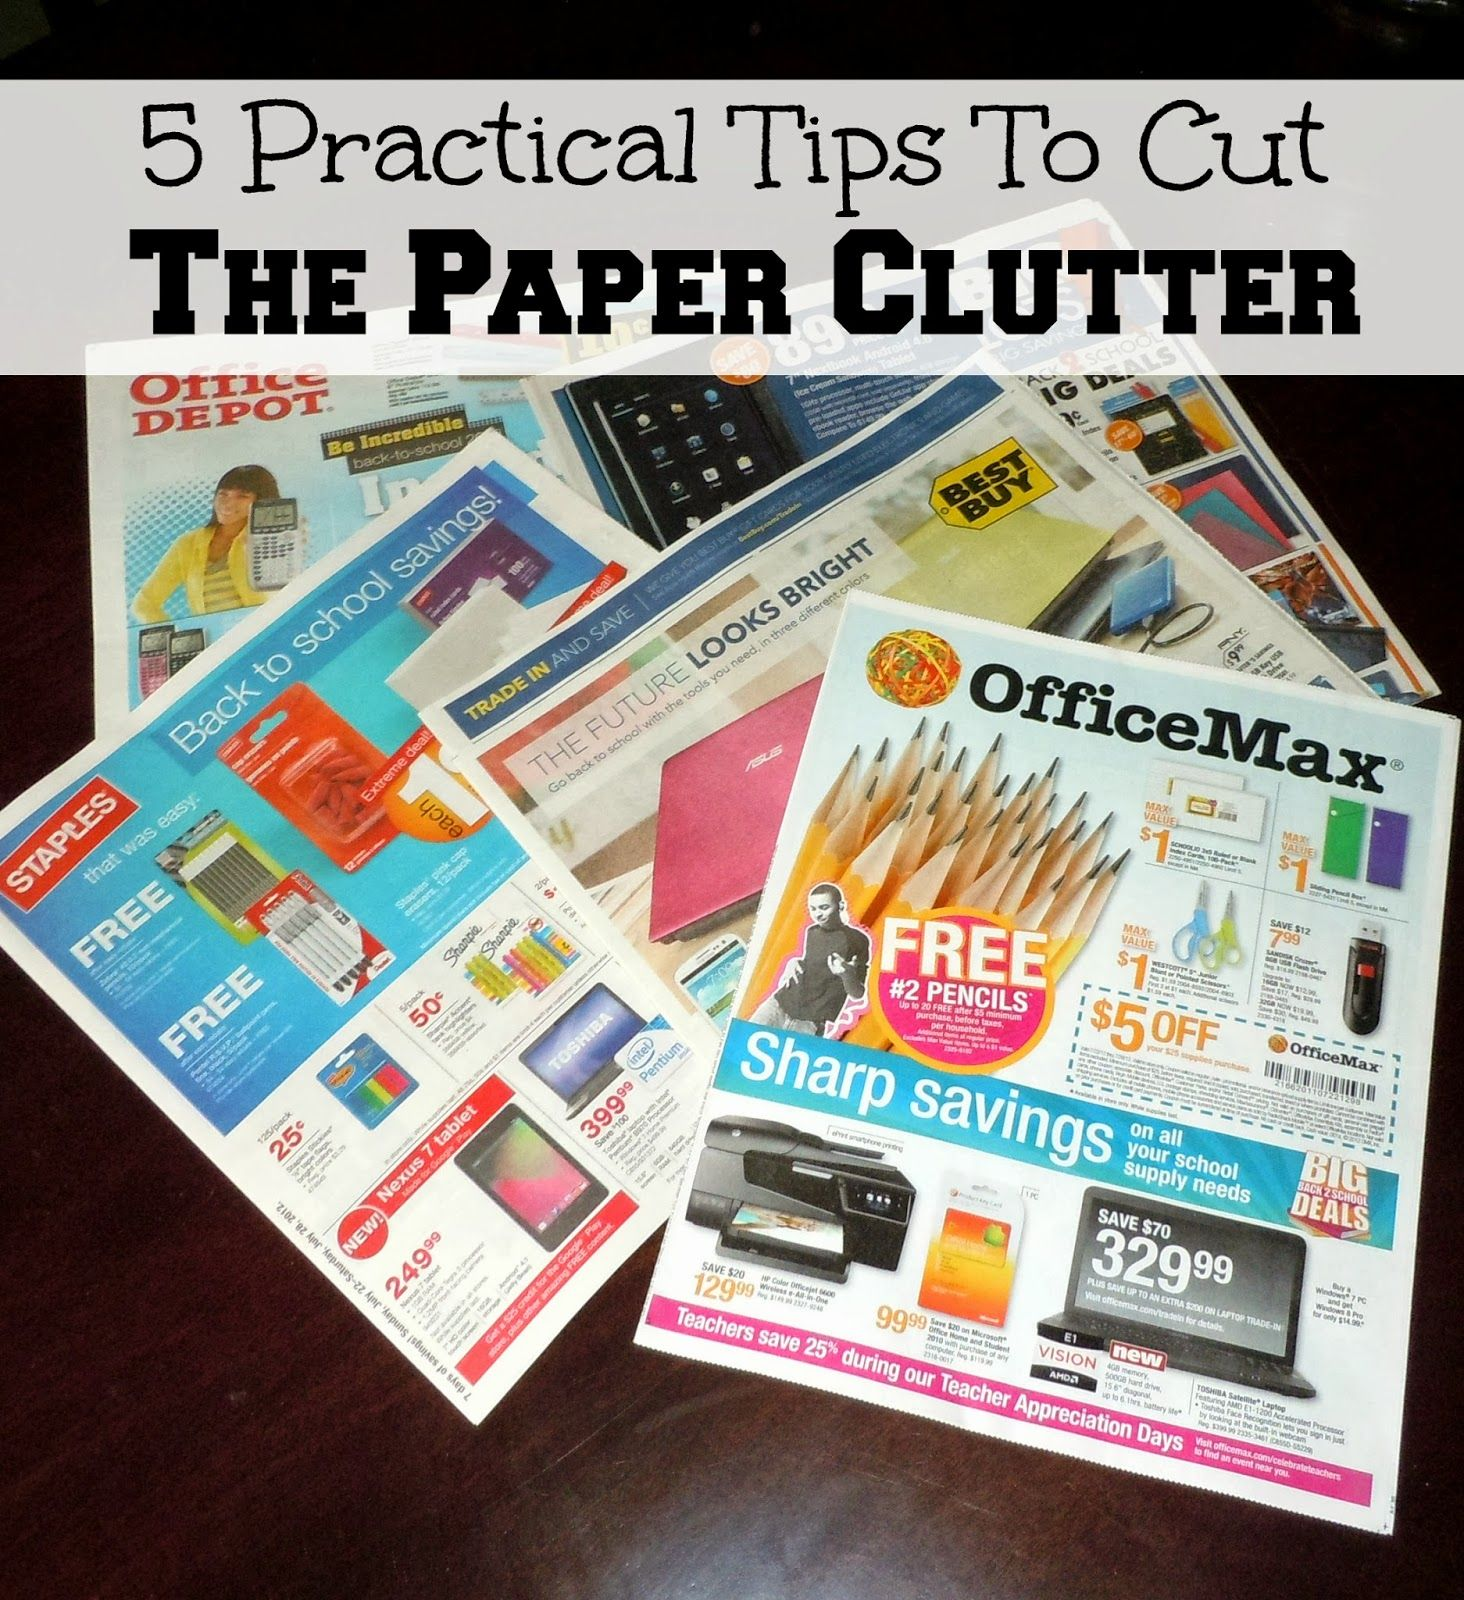 5 Practical Tips To Cut The Paper Clutter | Confessions of a Semi-Domesticated Mama